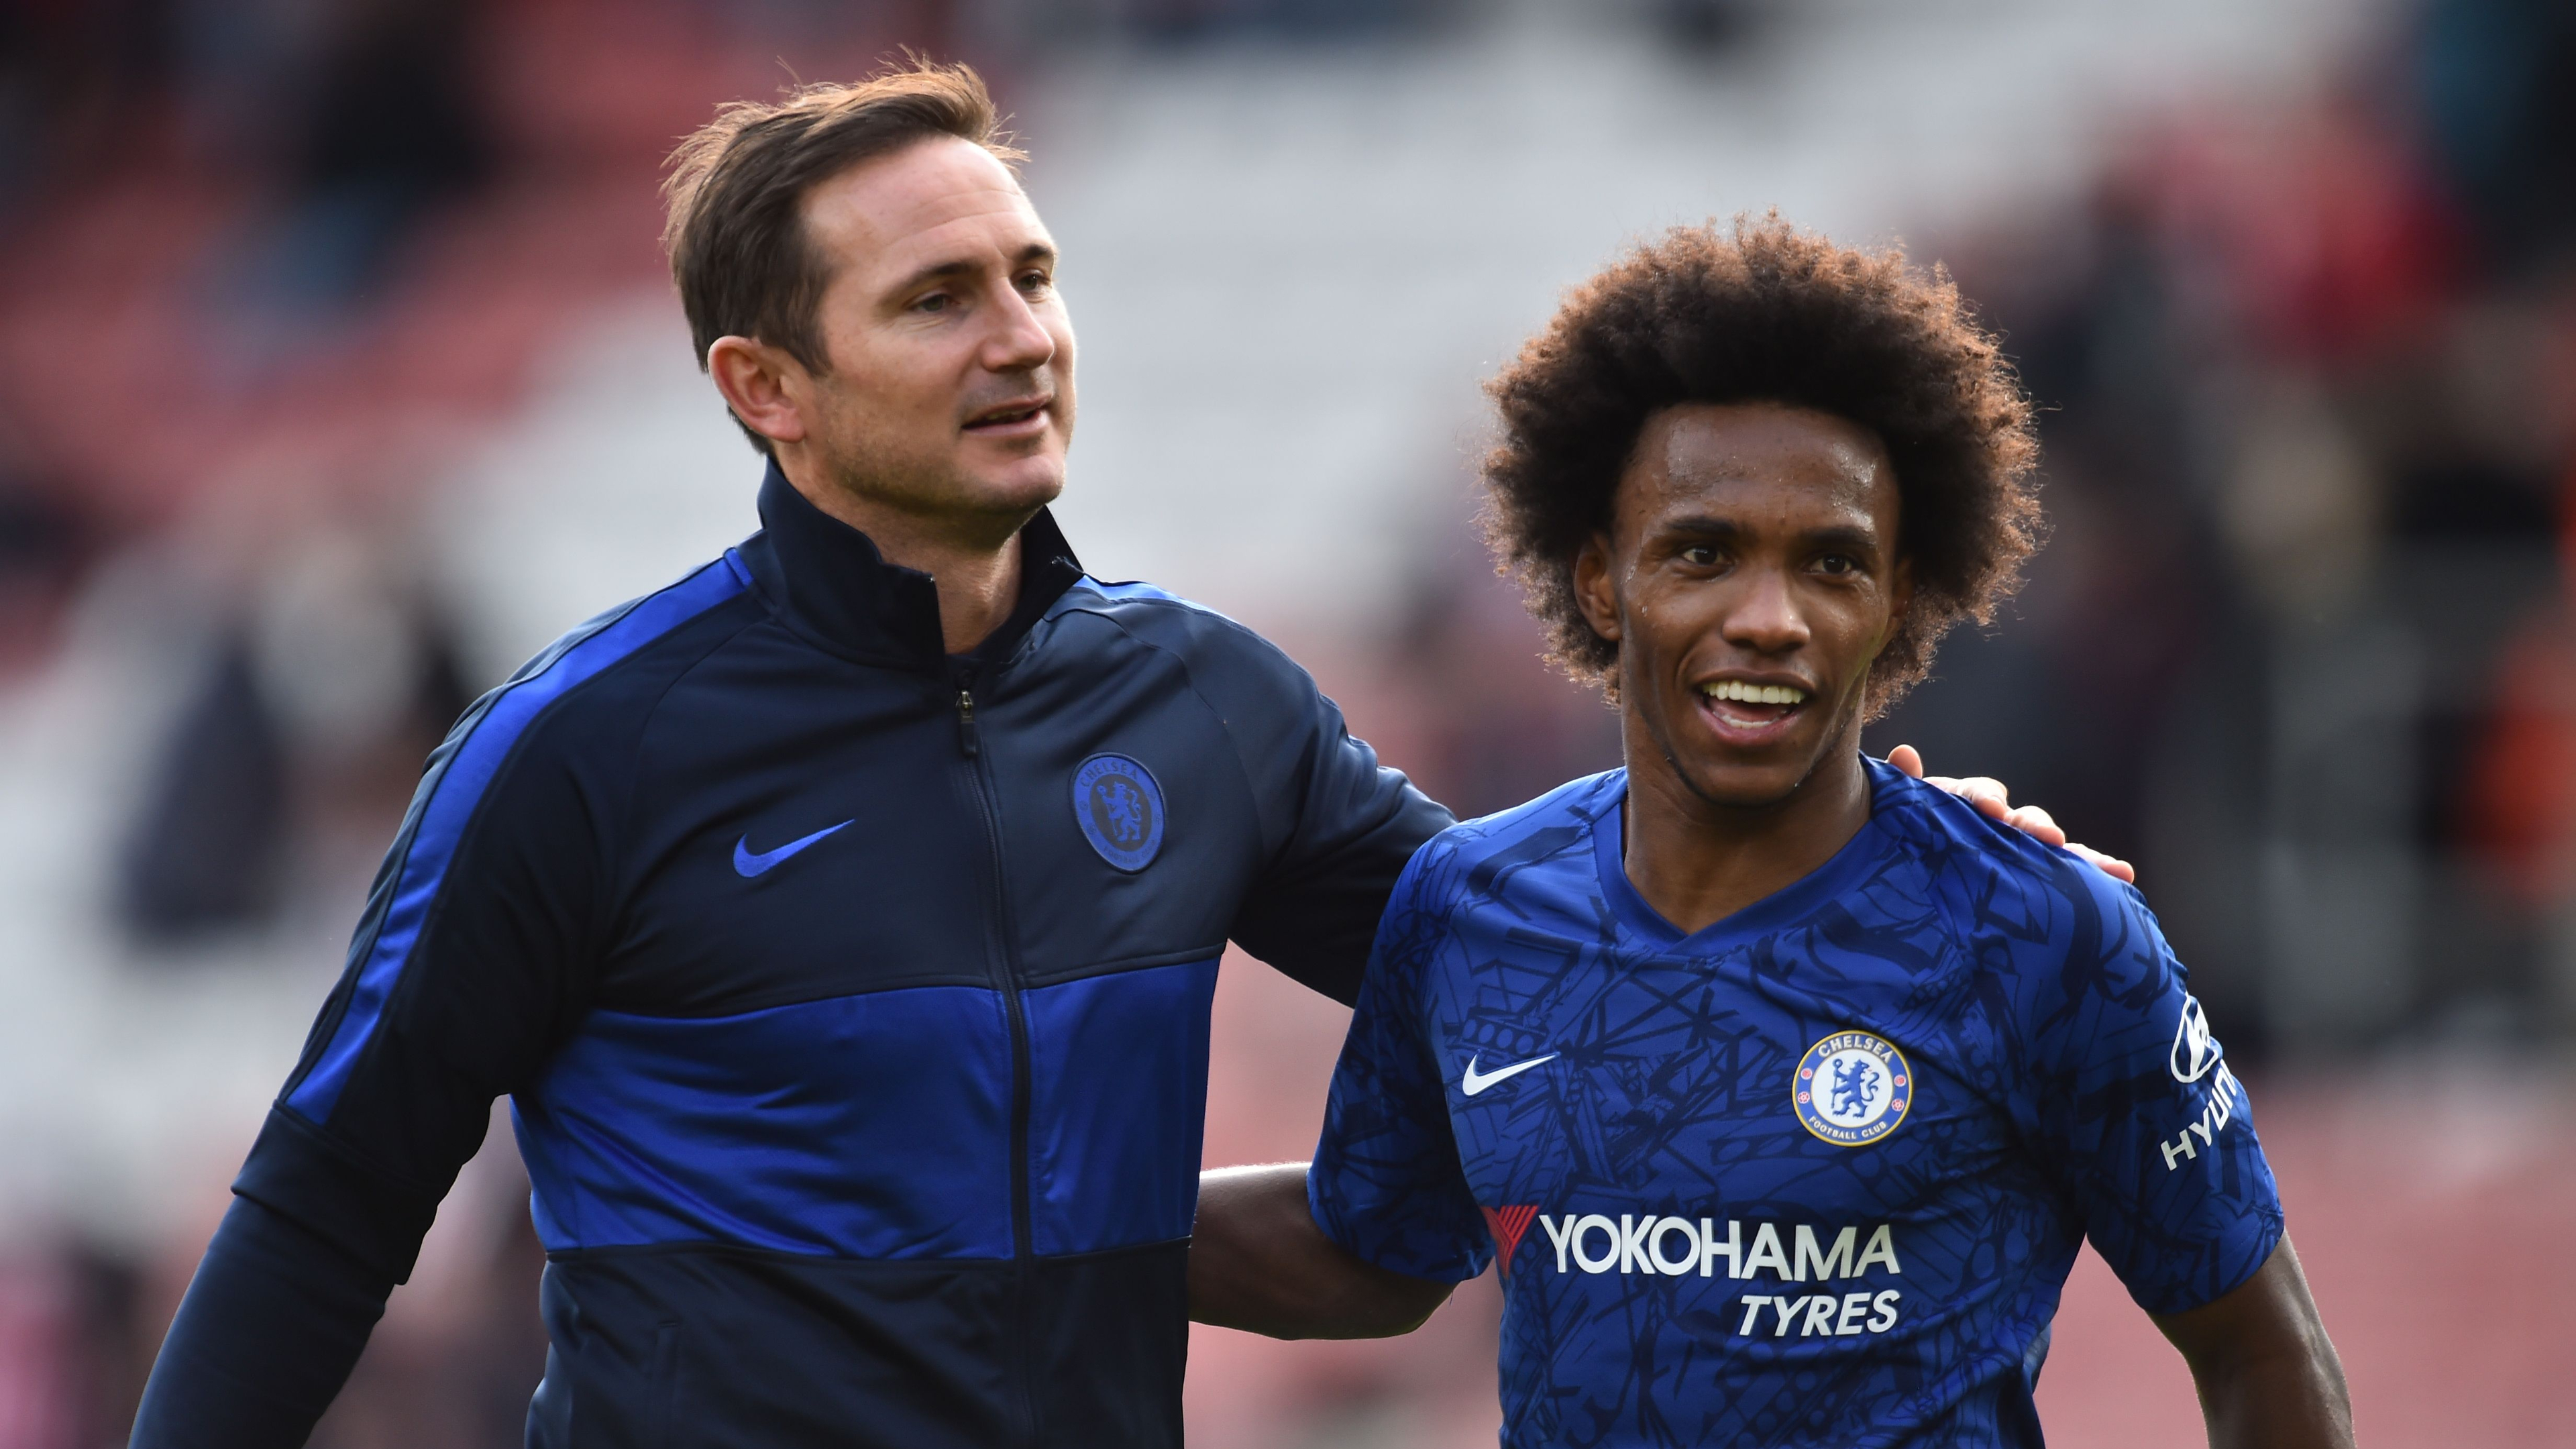 Jose Mourinho accuses Frank Lampard's Chelsea team of lacking